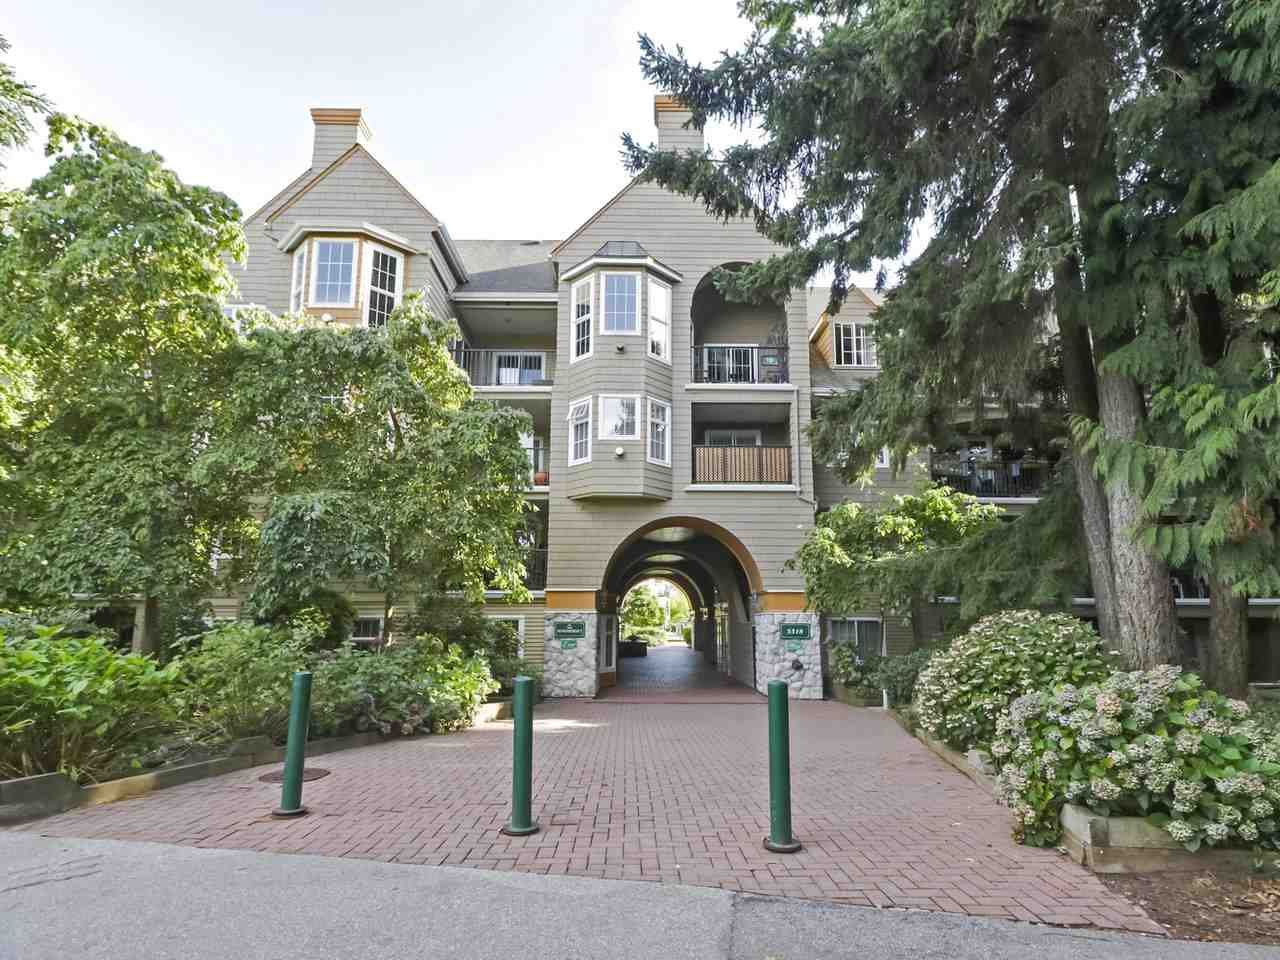 "Main Photo: 106 5518 14 Avenue in Delta: Cliff Drive Condo for sale in ""WINDSOR WOODS - SOMMERSET"" (Tsawwassen)  : MLS®# R2403999"